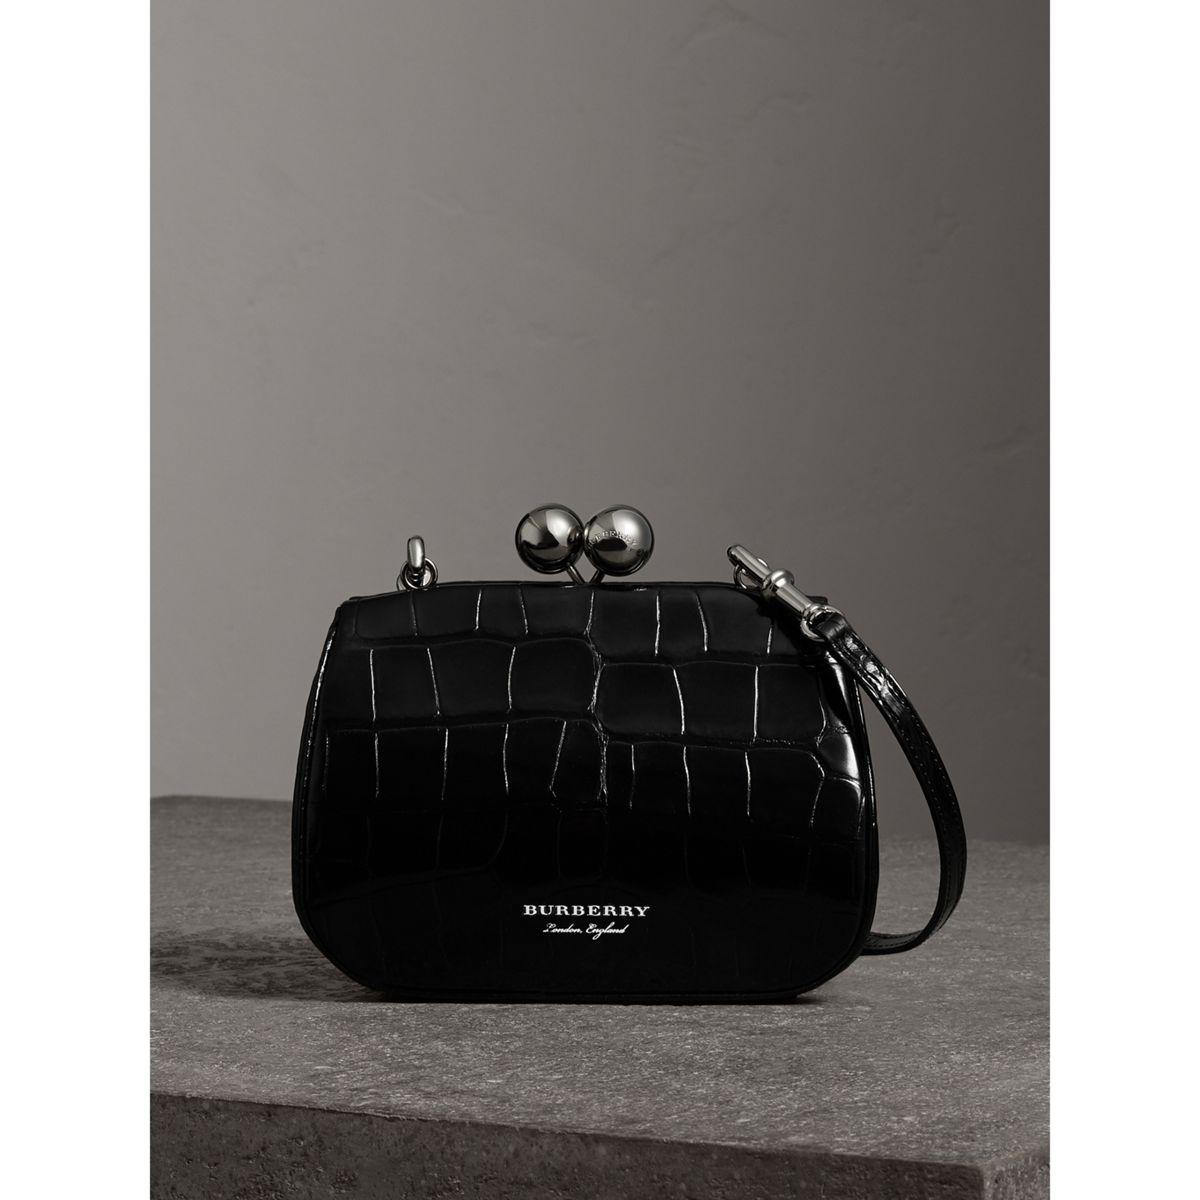 85c87a6ddc Burberry Small Alligator Frame Bag in Black - Lyst